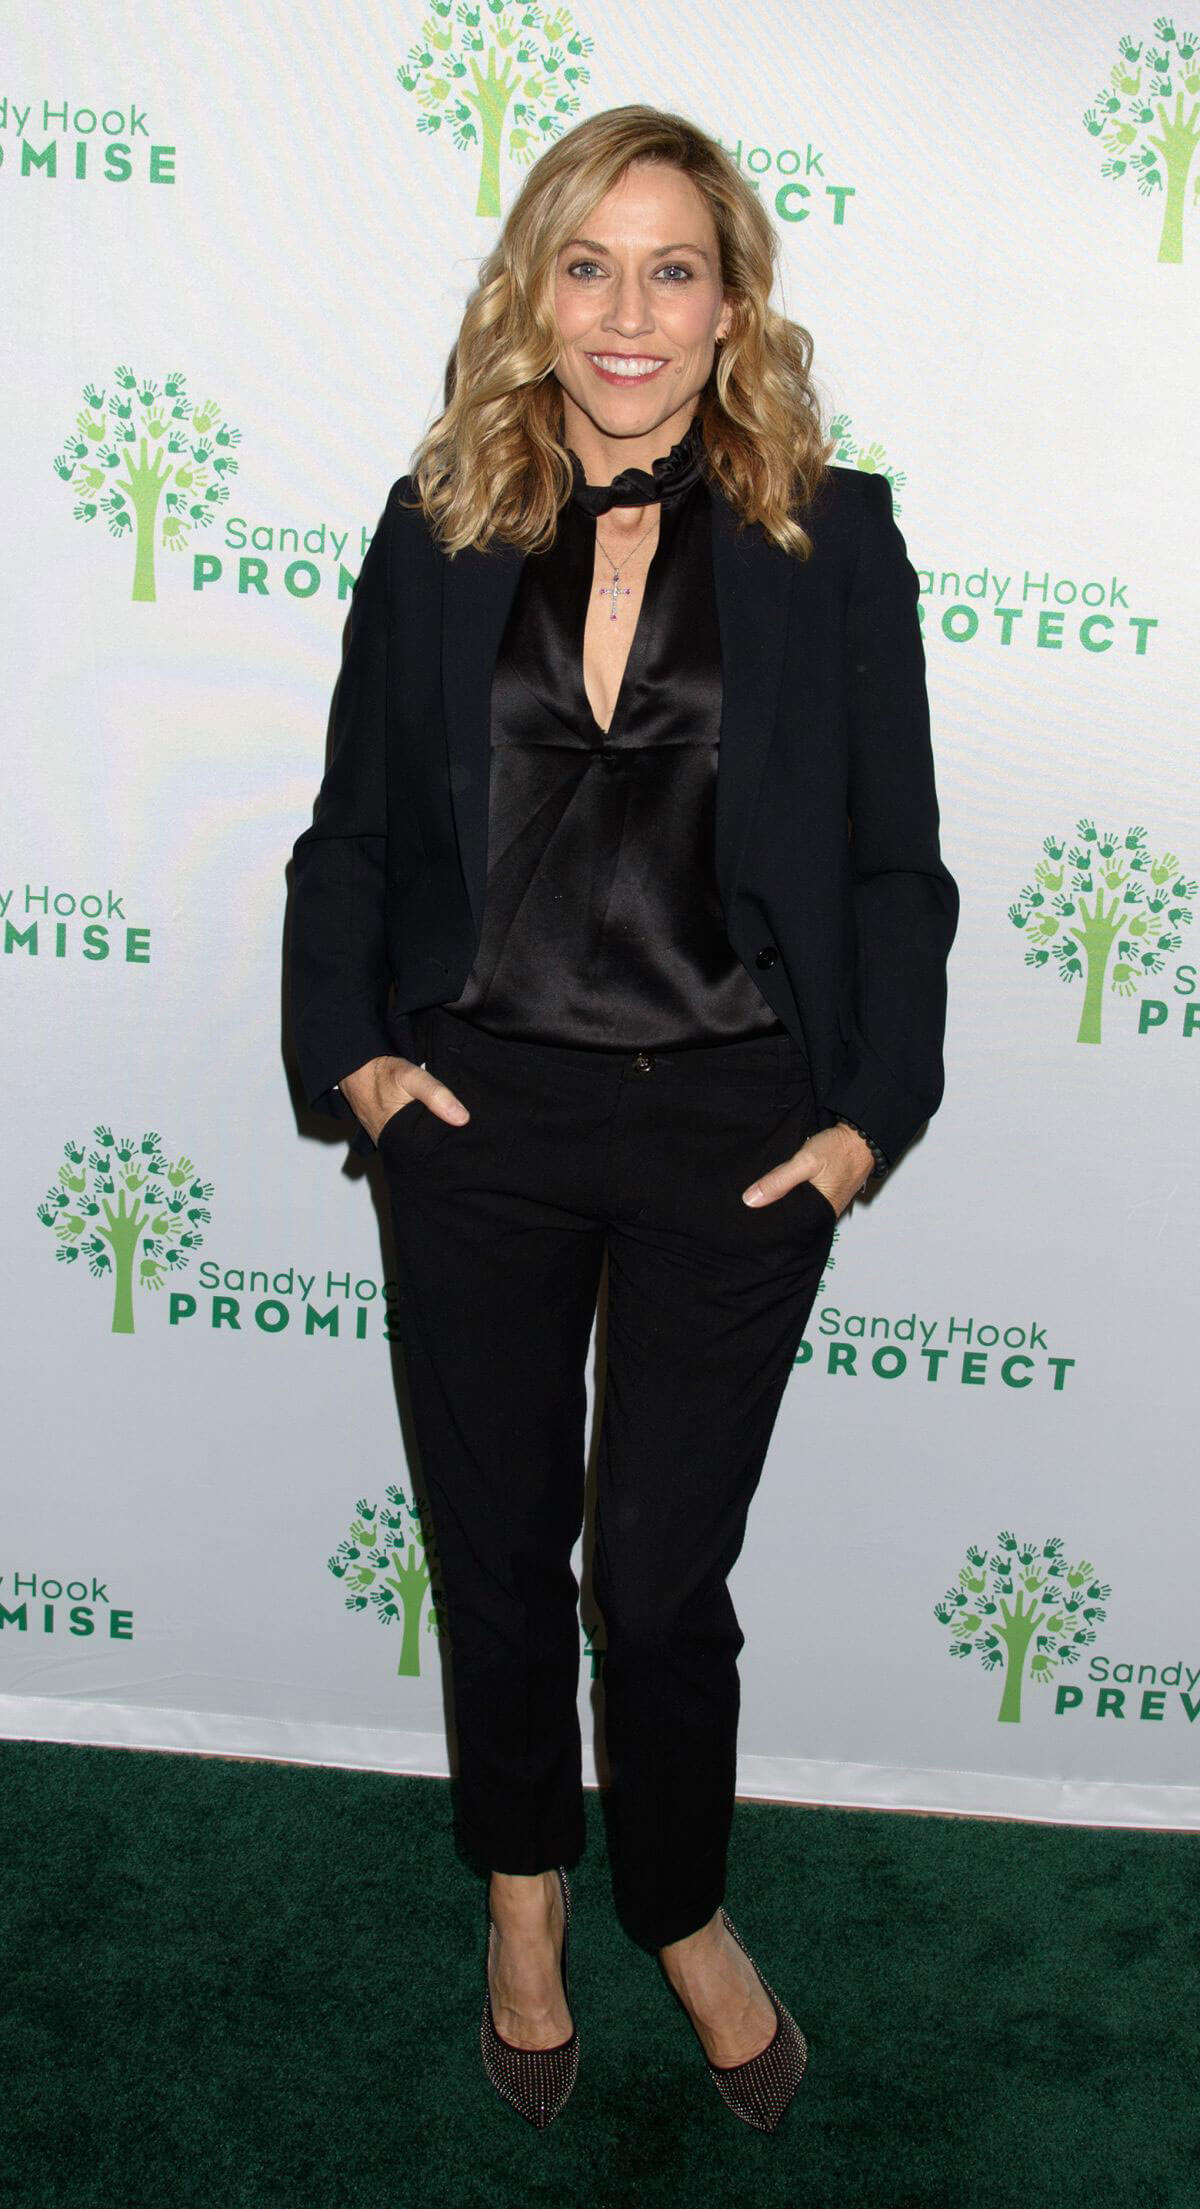 Sheryl Crow Stills at 2017 Sandy Hook Promise Benefit in New York 2017/12/12